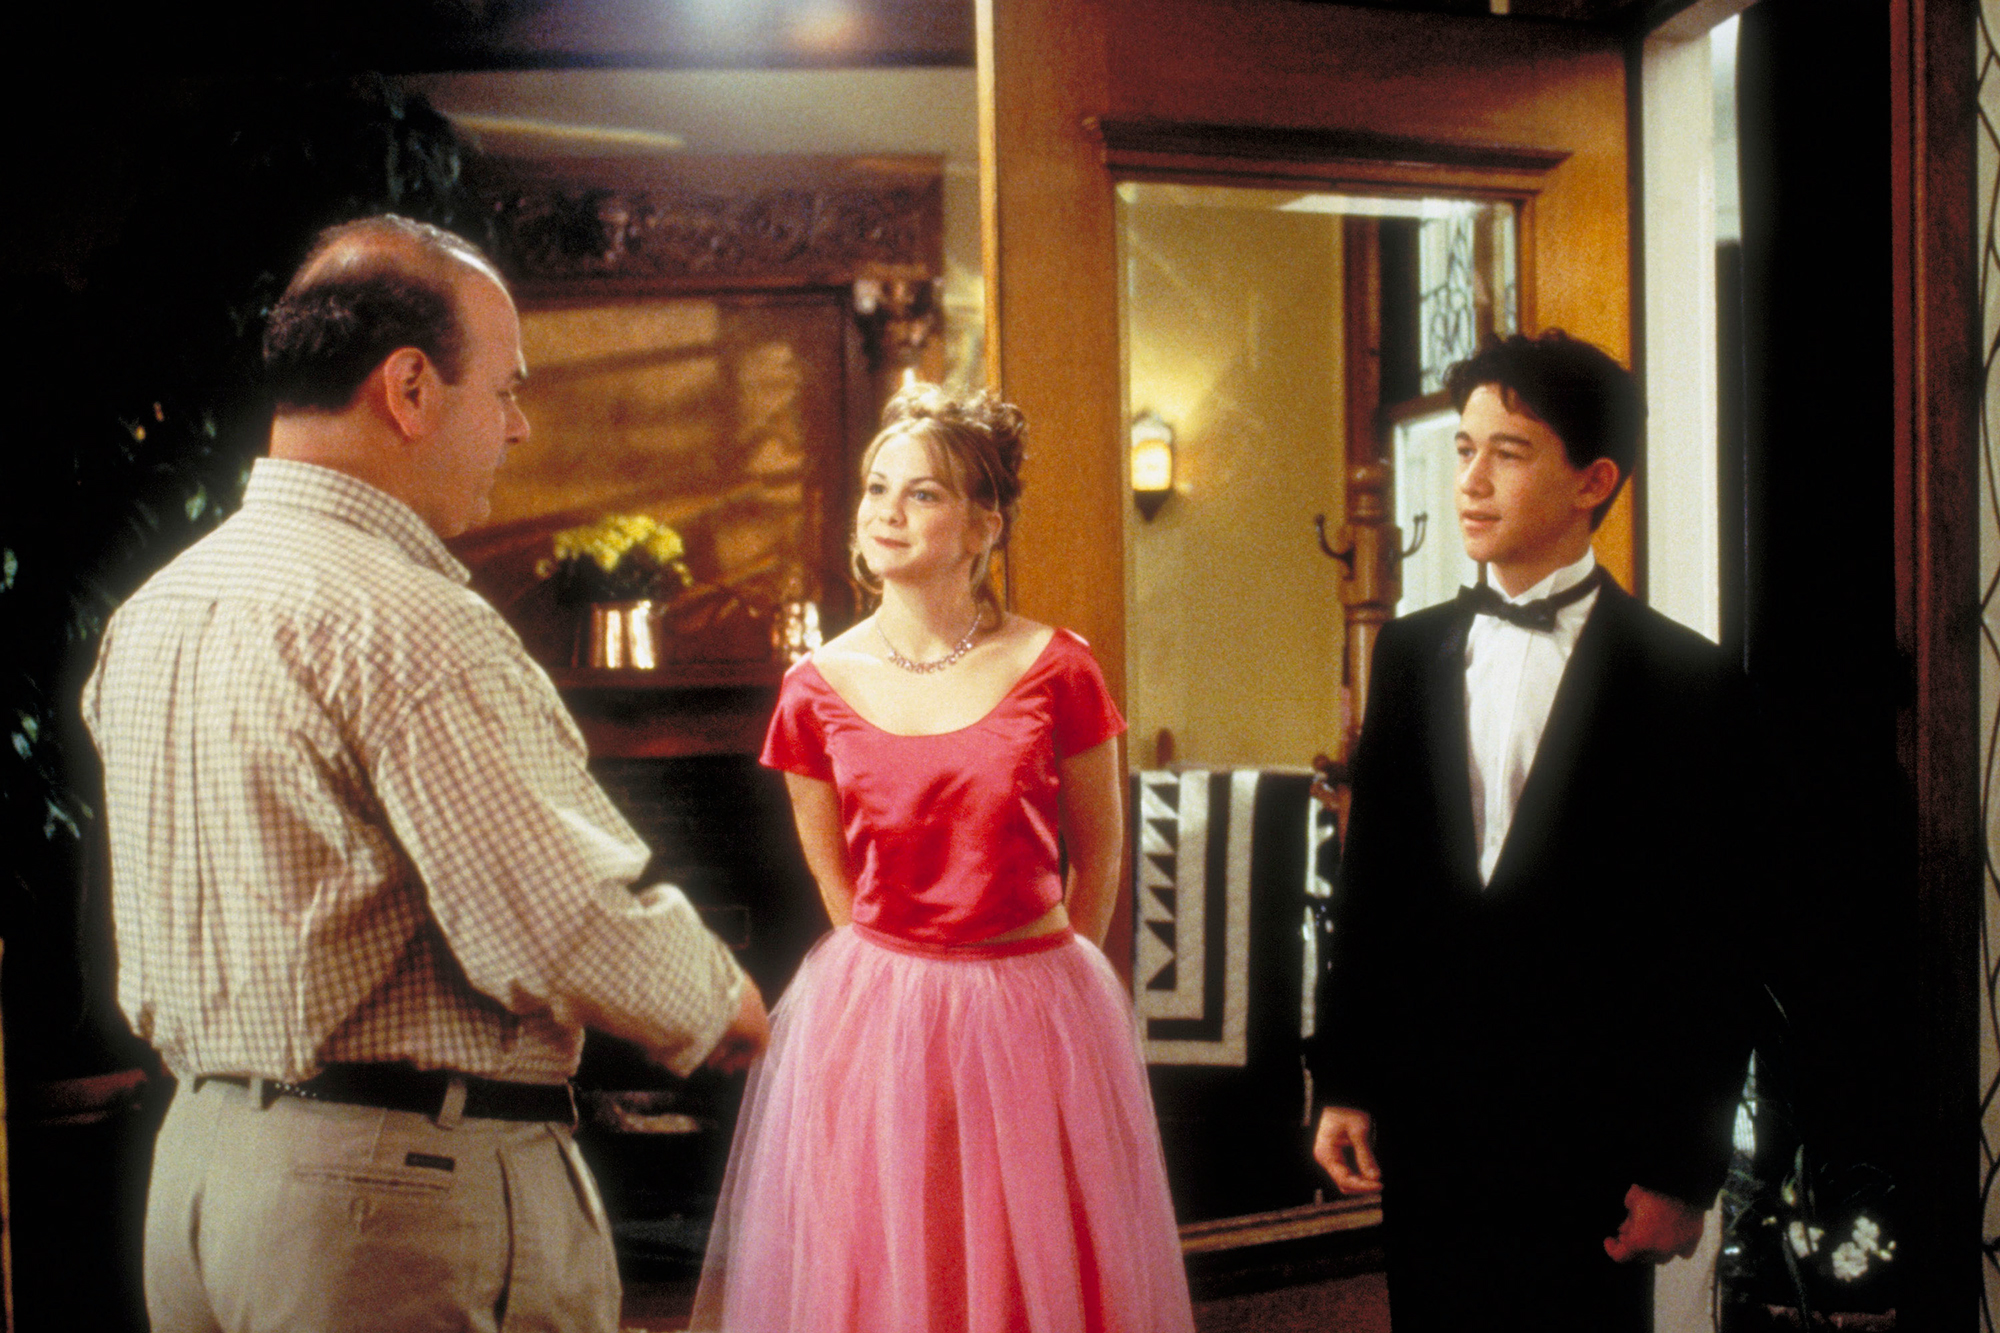 10 THINGS I HATE ABOUT YOU, from left: Larry Miller, Larisa Oleynik, Joseph Gordon-Levitt, 1999, © B